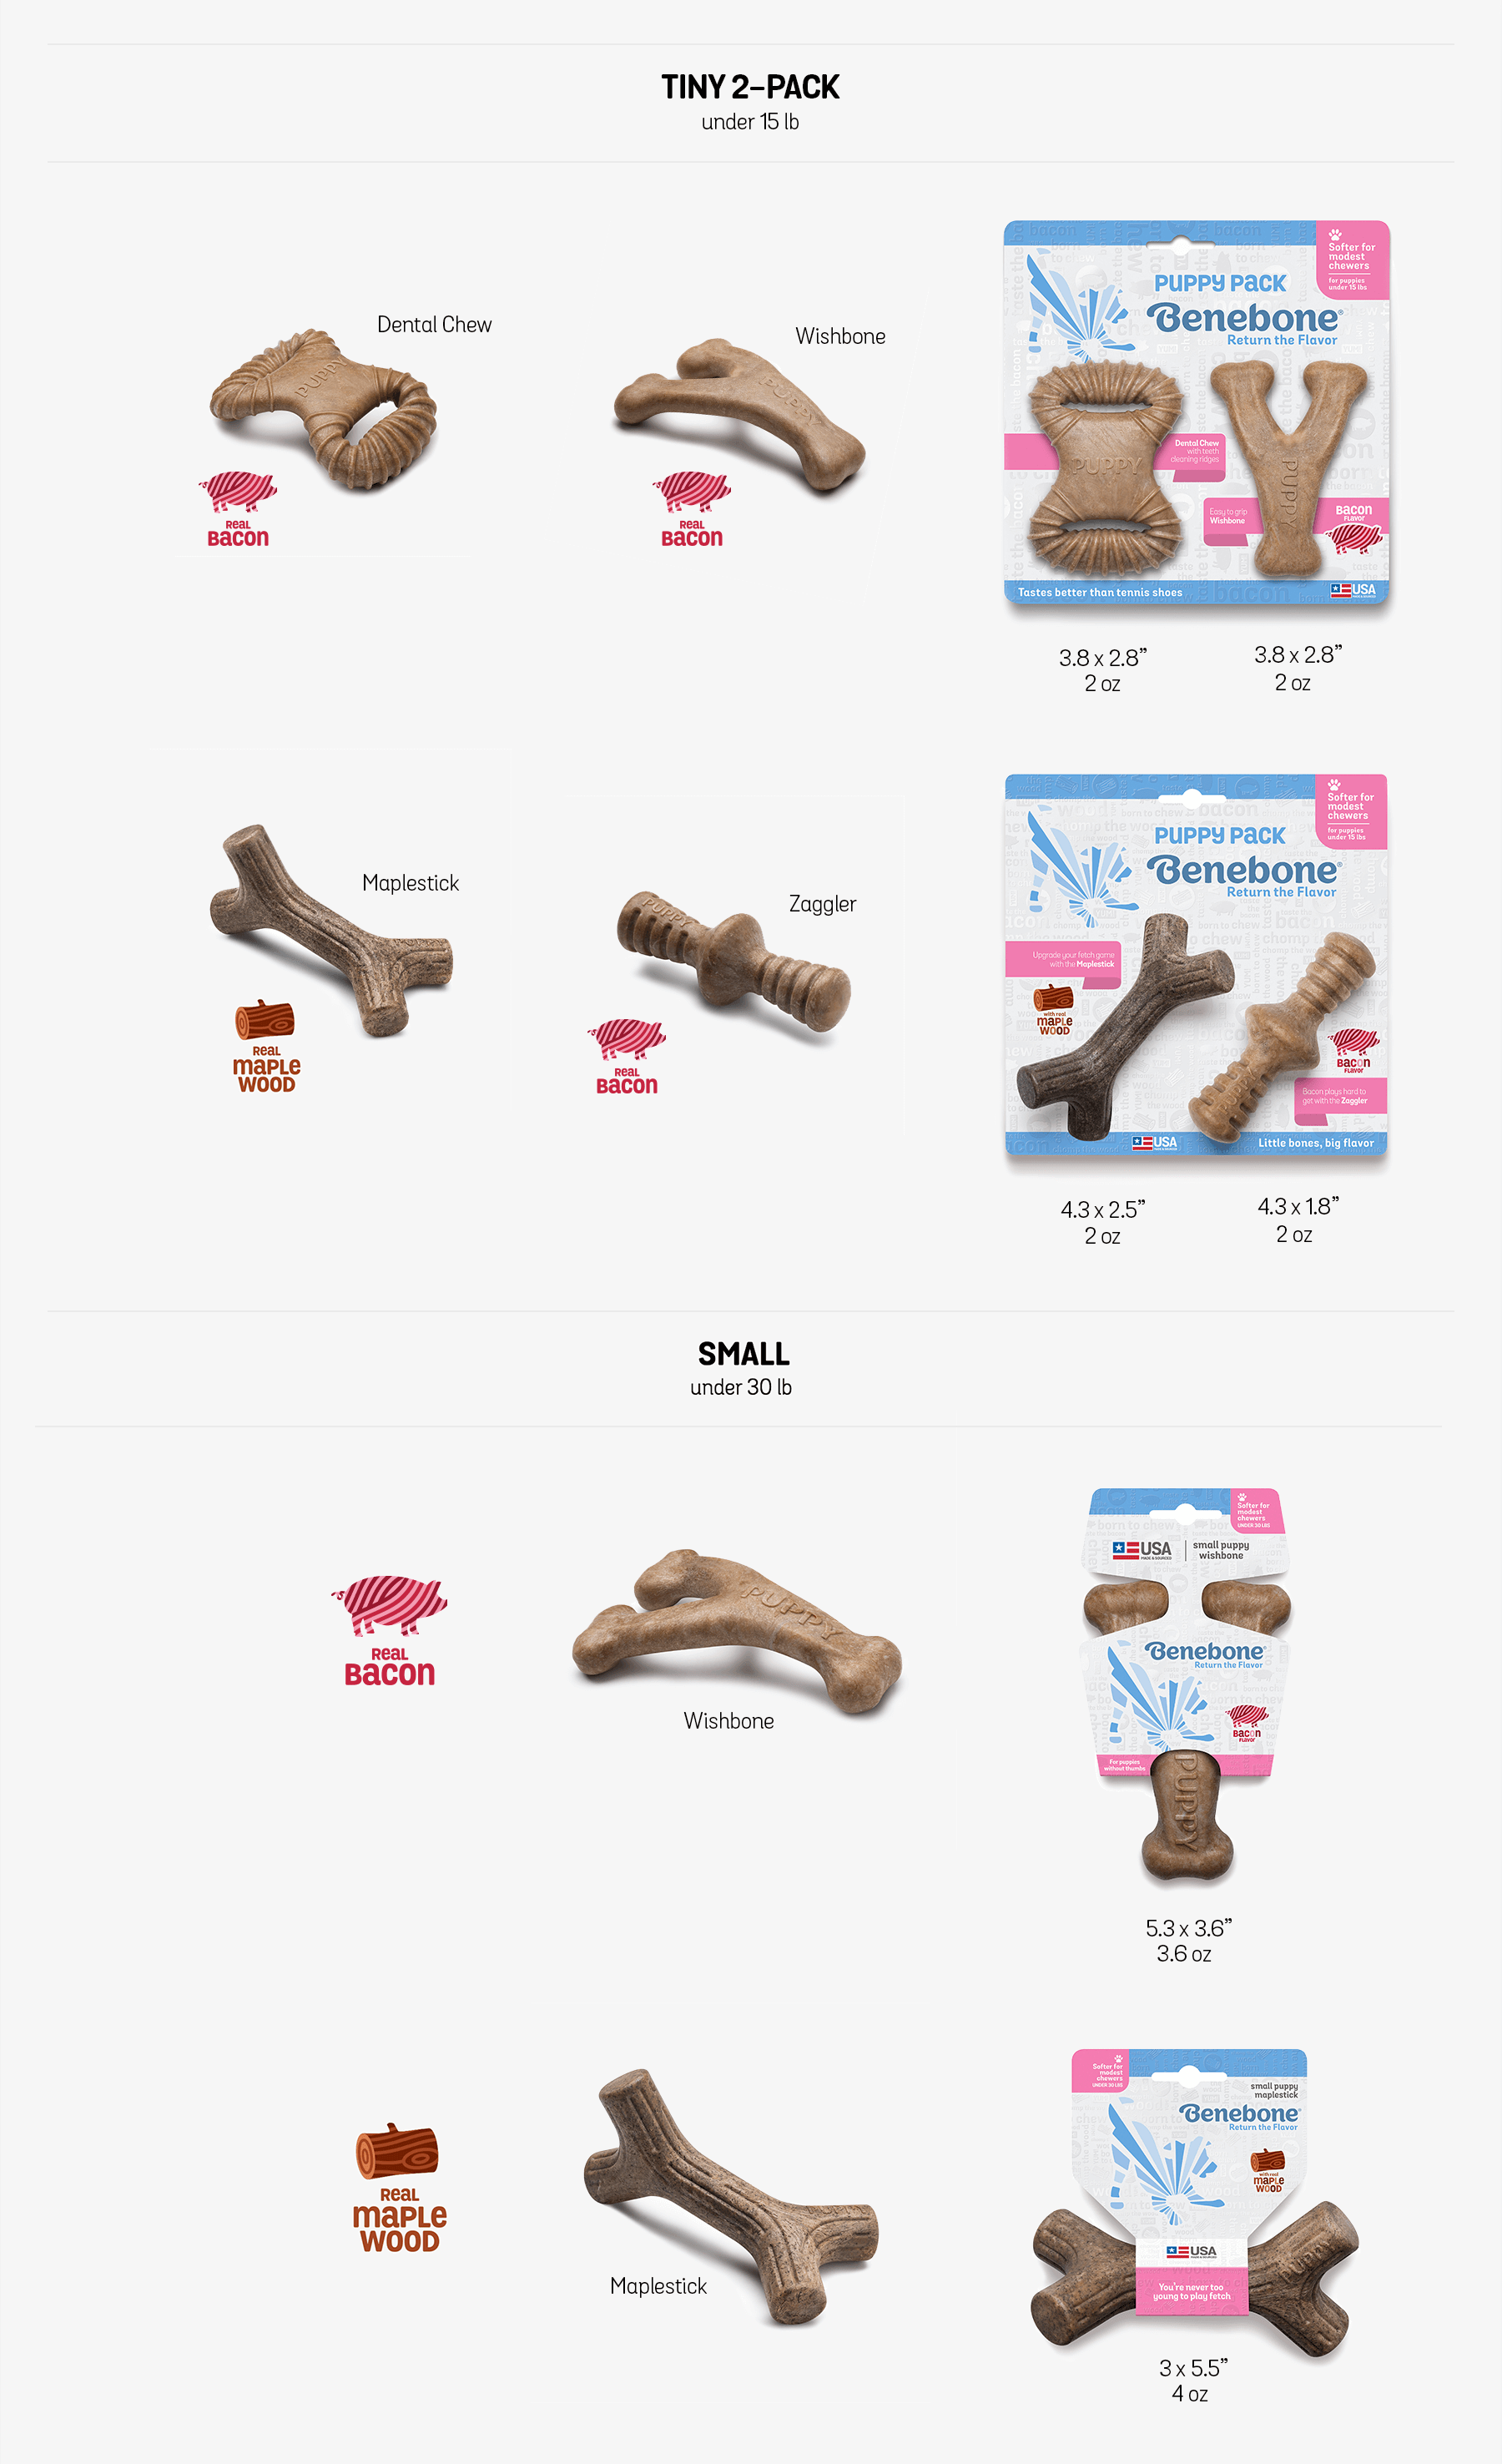 Puppy products. 2 pack and single products. Sizes: tiny under 15 lb., small under 30 lb., Dental Chew, Wishbone, Maplestick, Zaggler